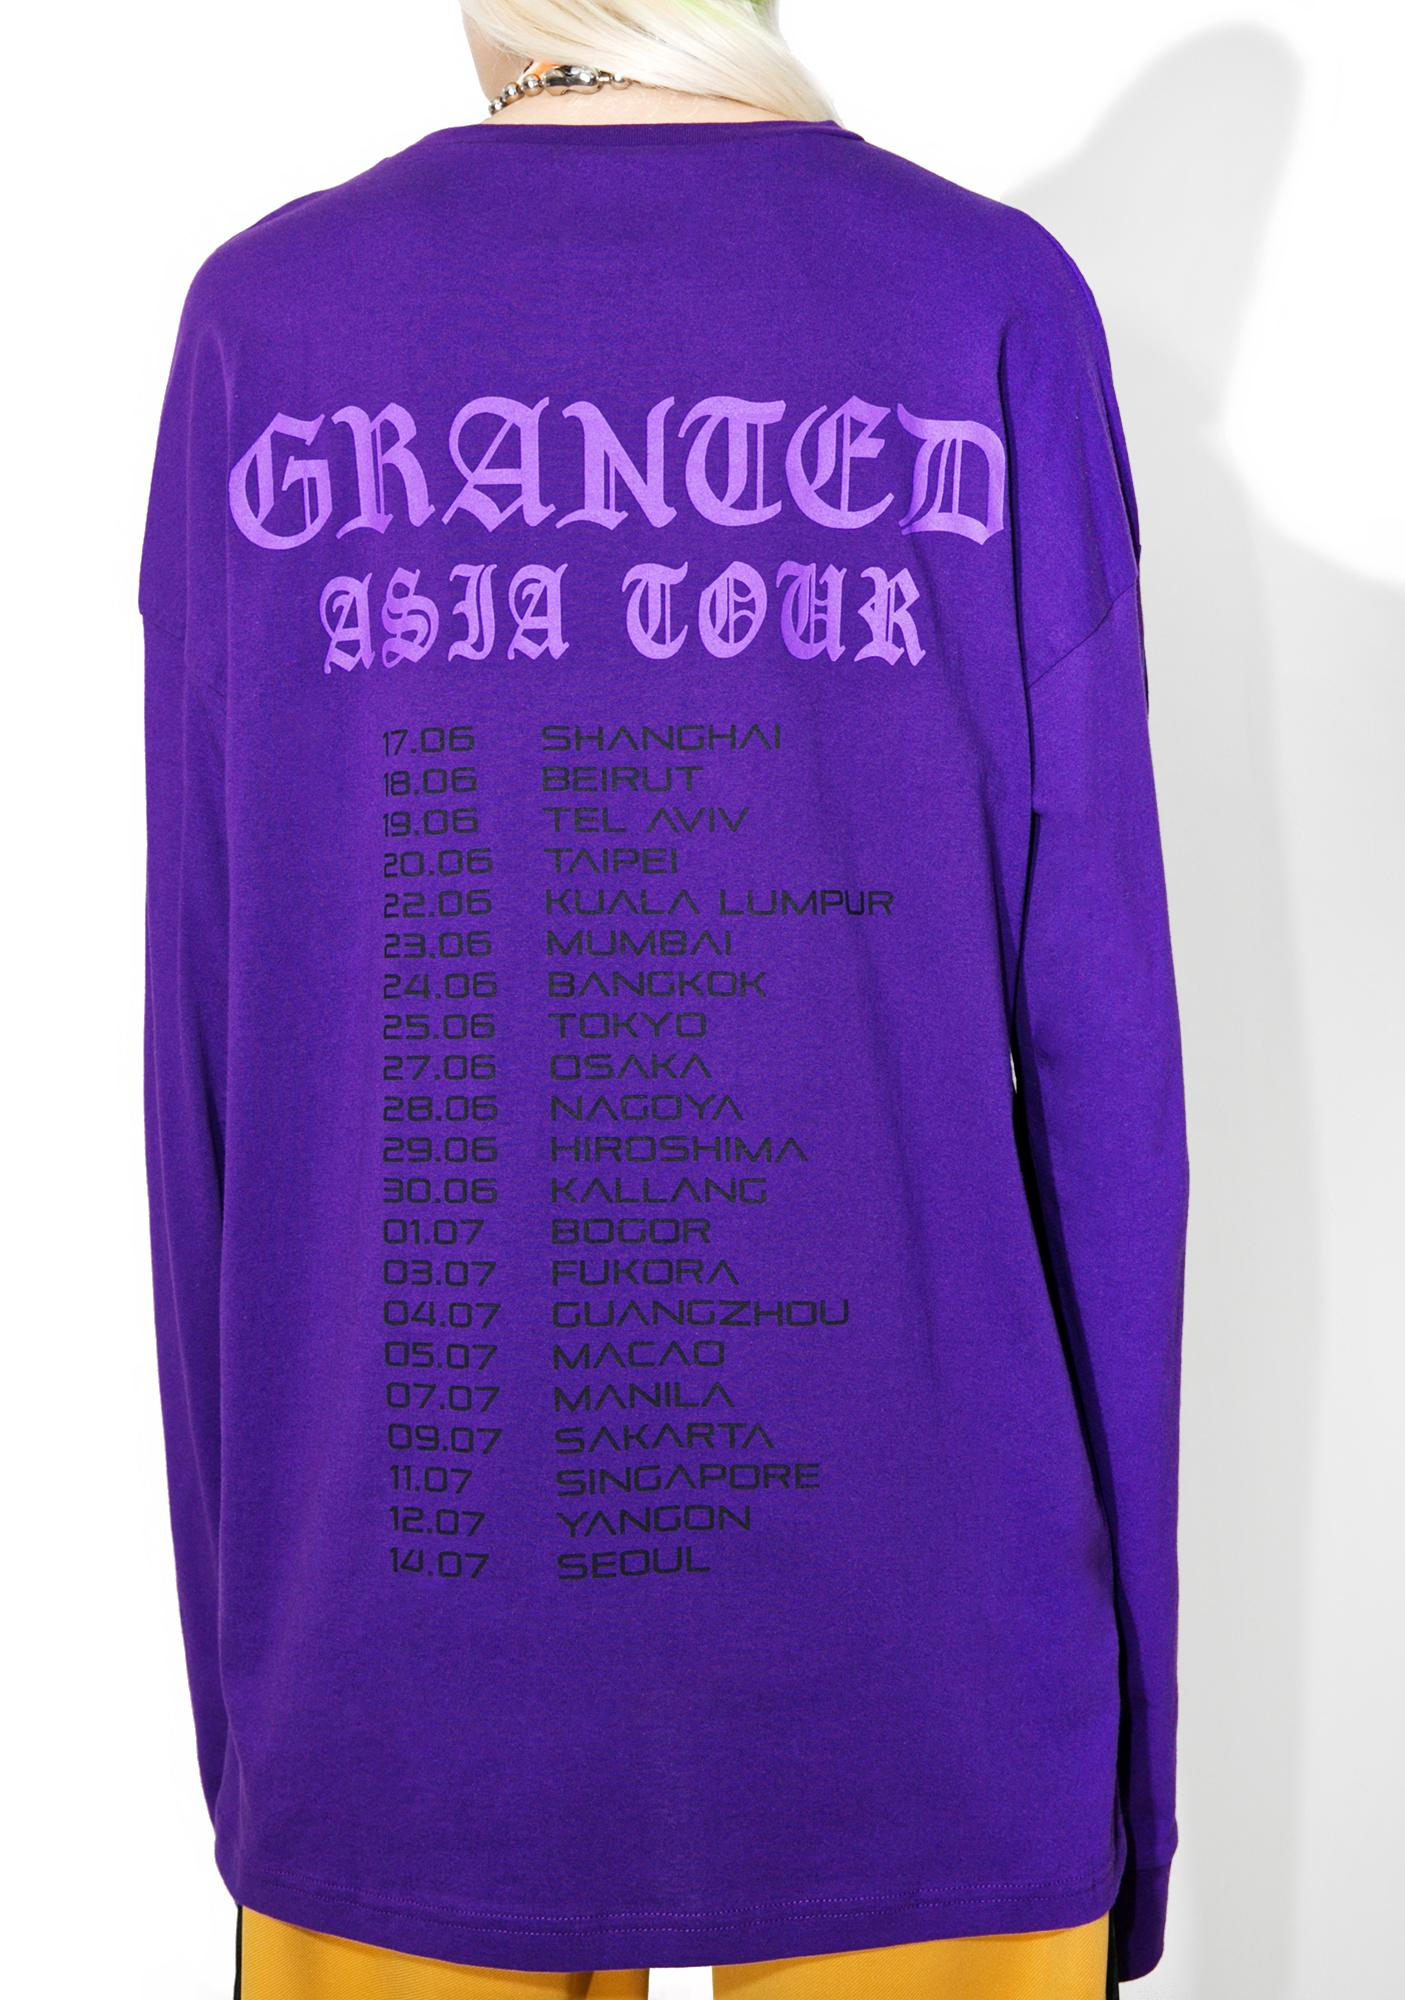 Jaded x Granted Tour Merch Long Sleeve Tee